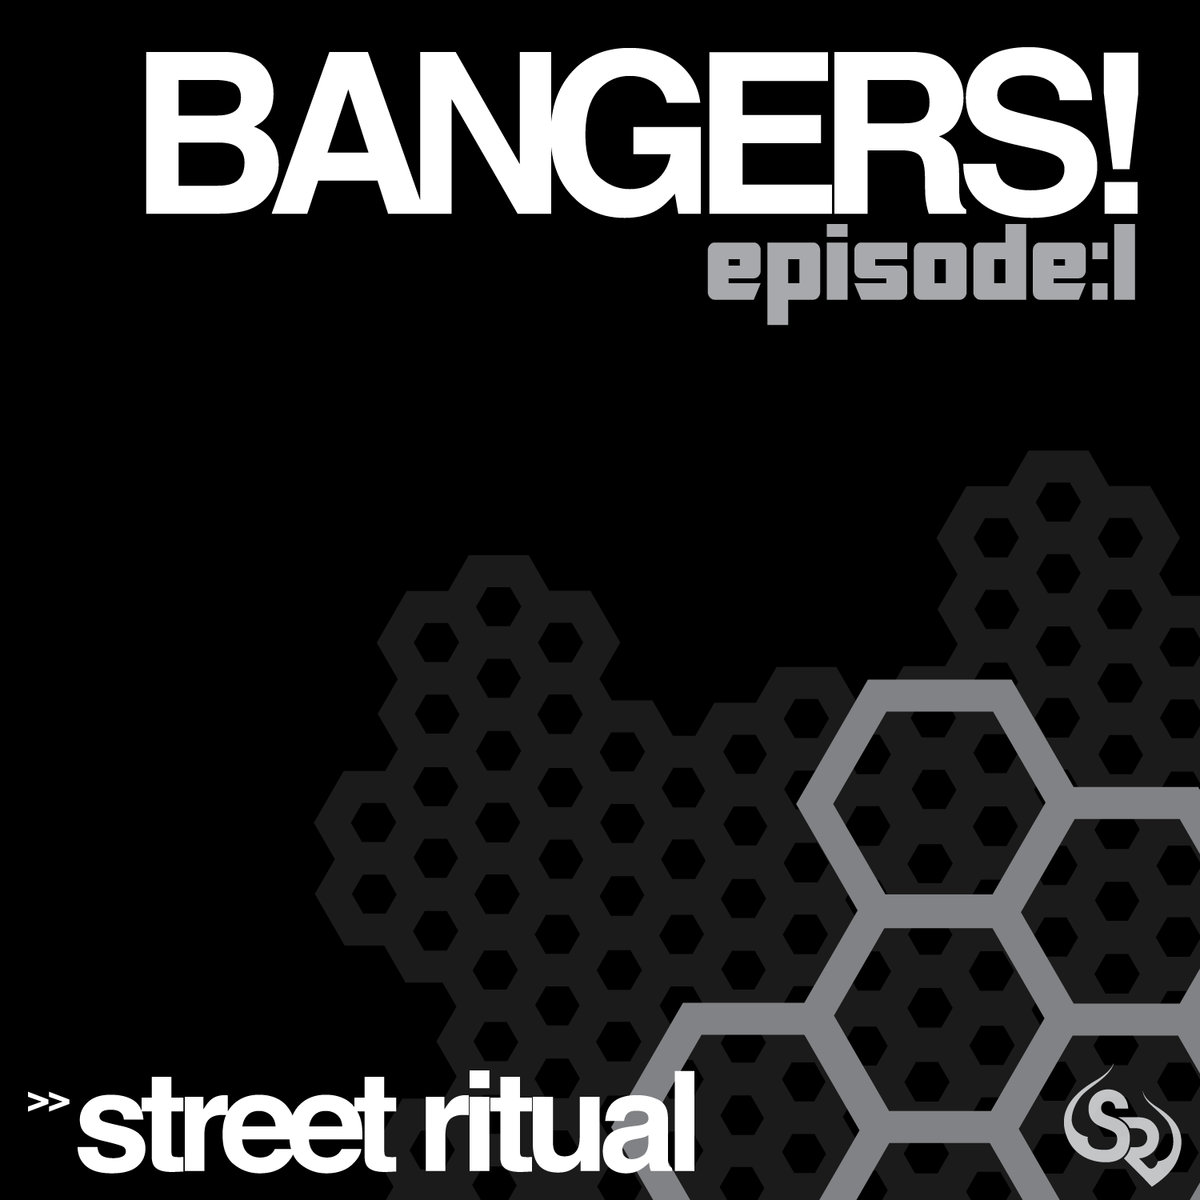 Trevor Kelly - SteeeZy Does It @ 'Various Artists - Bangers! Episode:1' album (bass, electronic)